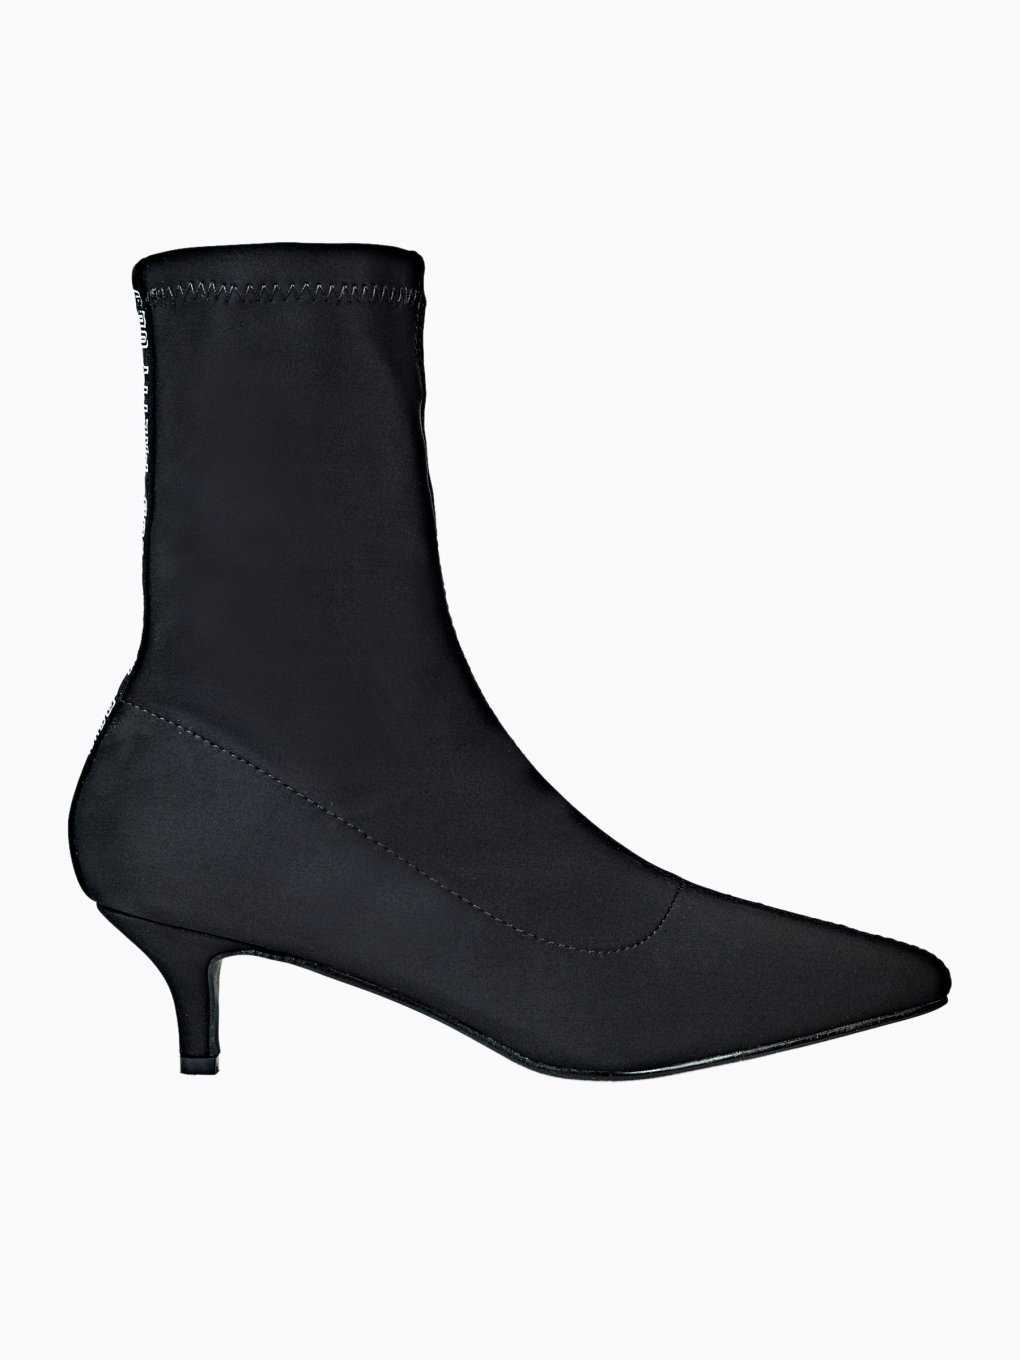 Mid heel ankle sock style boots with tape